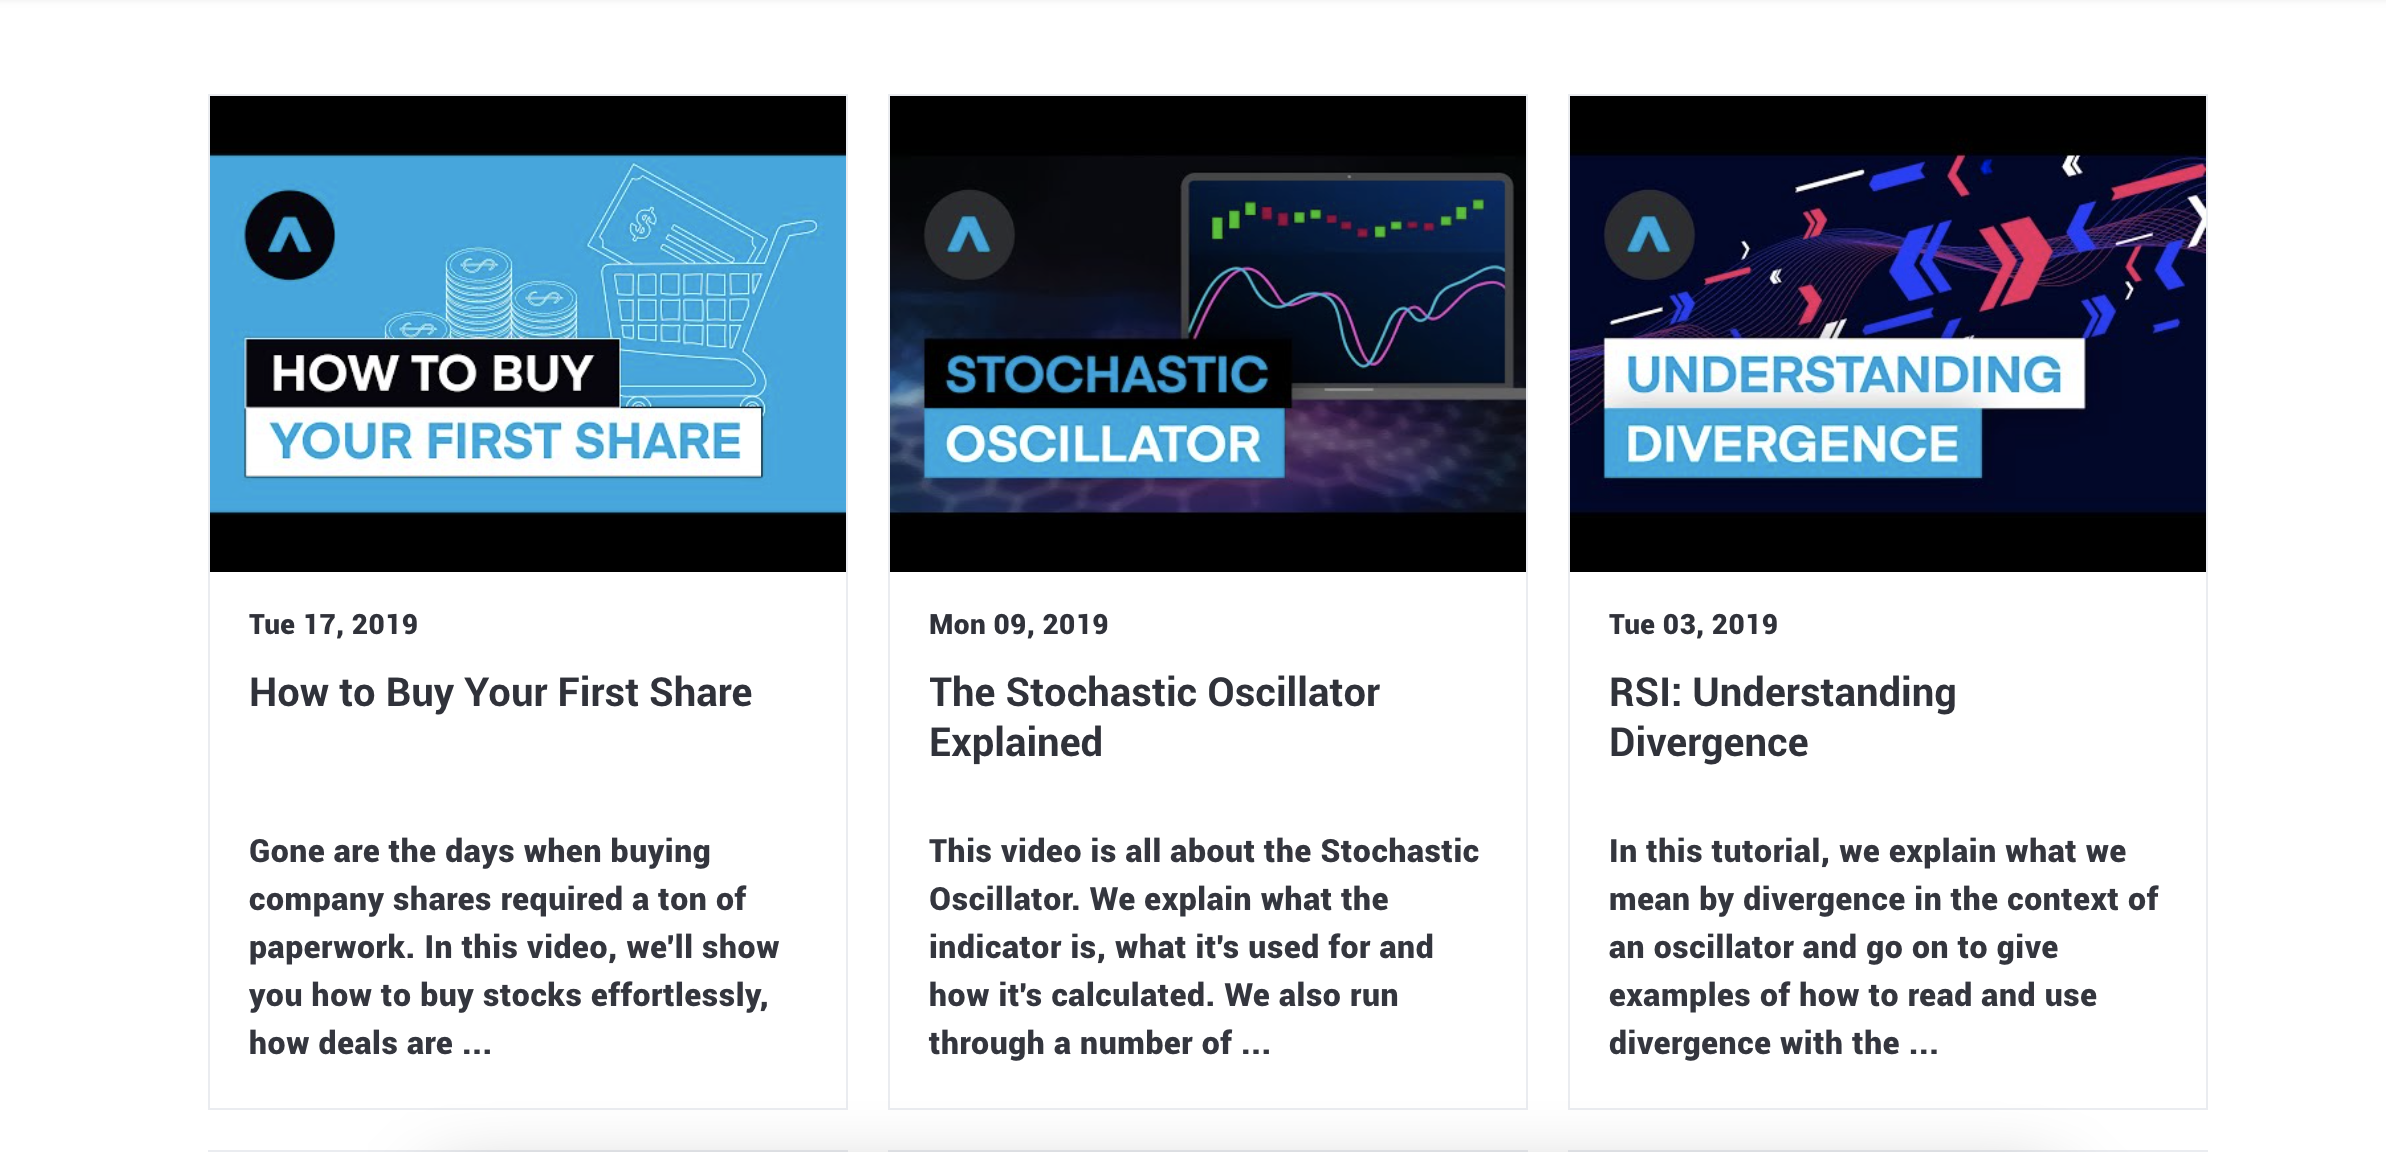 Trading 212 has many educational videos for a range of investor skill levels. Image from trading212.com